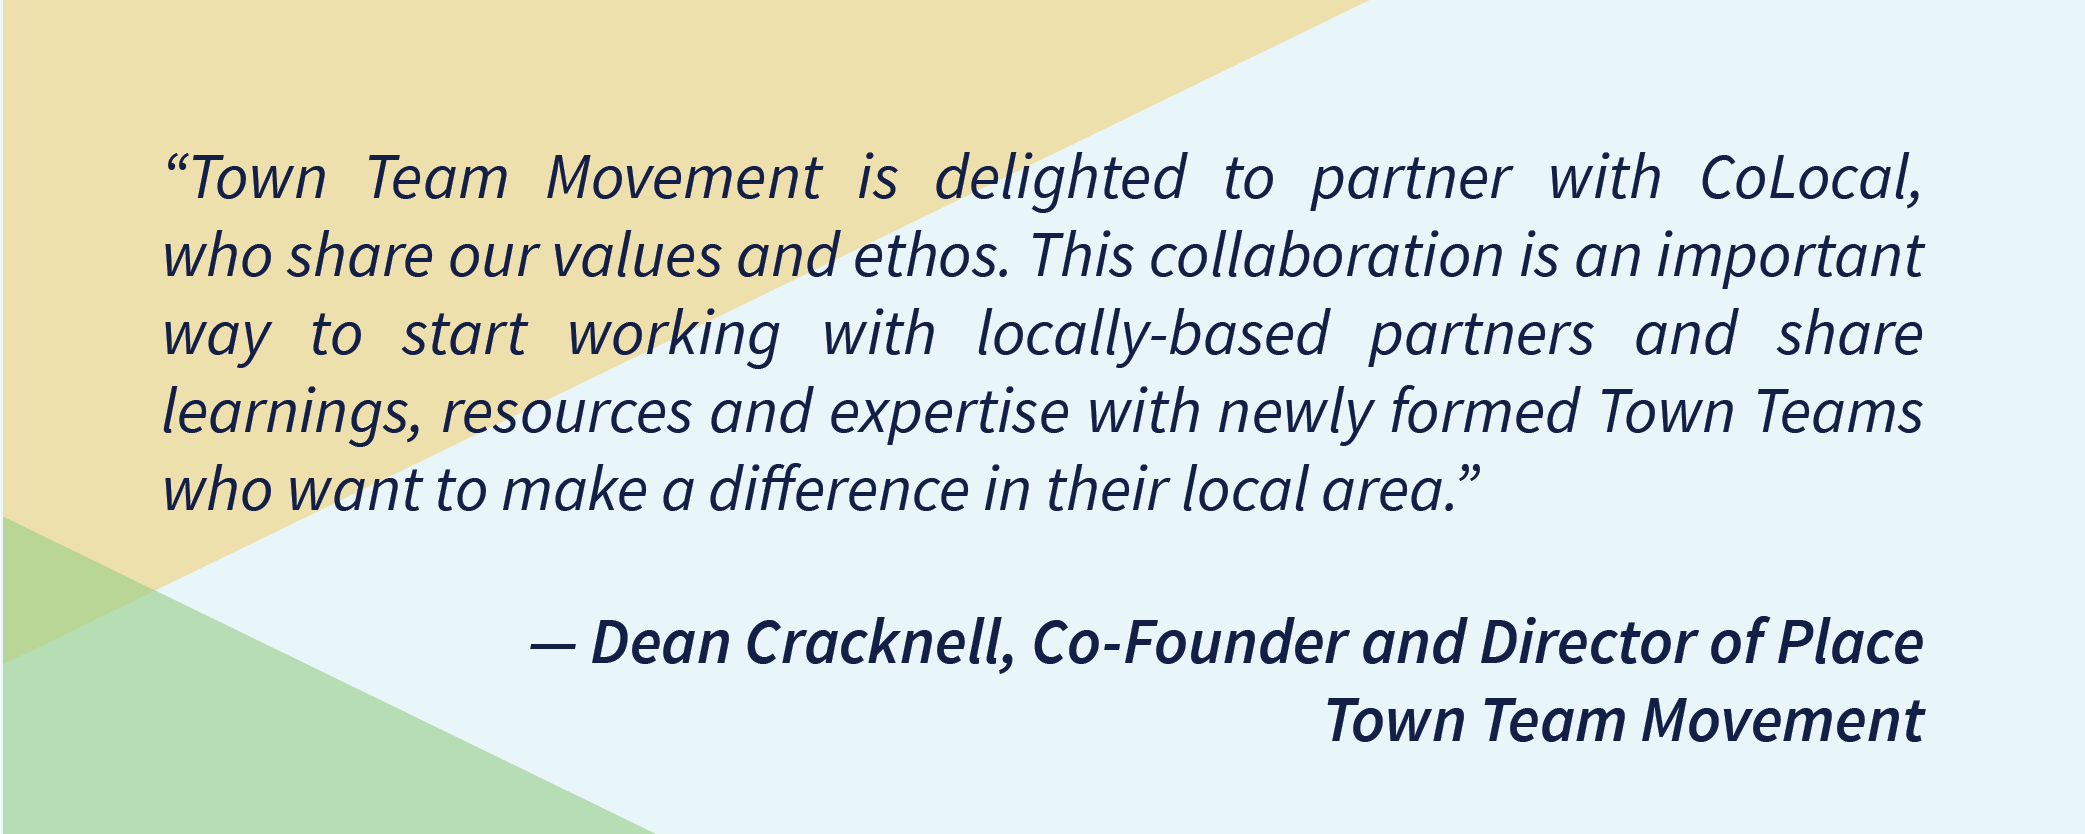 """""""Town Team Movement is delighted to partner with CoLocal, who share our values and ethos. This collaboration is an important way to start working with locally-based partners and share learnings, resources and expertise with newly formed Town Teams who want to make a difference in their local area"""" — Dean Cracknell, Co-Founder and Director of Place -Town Team Movement"""